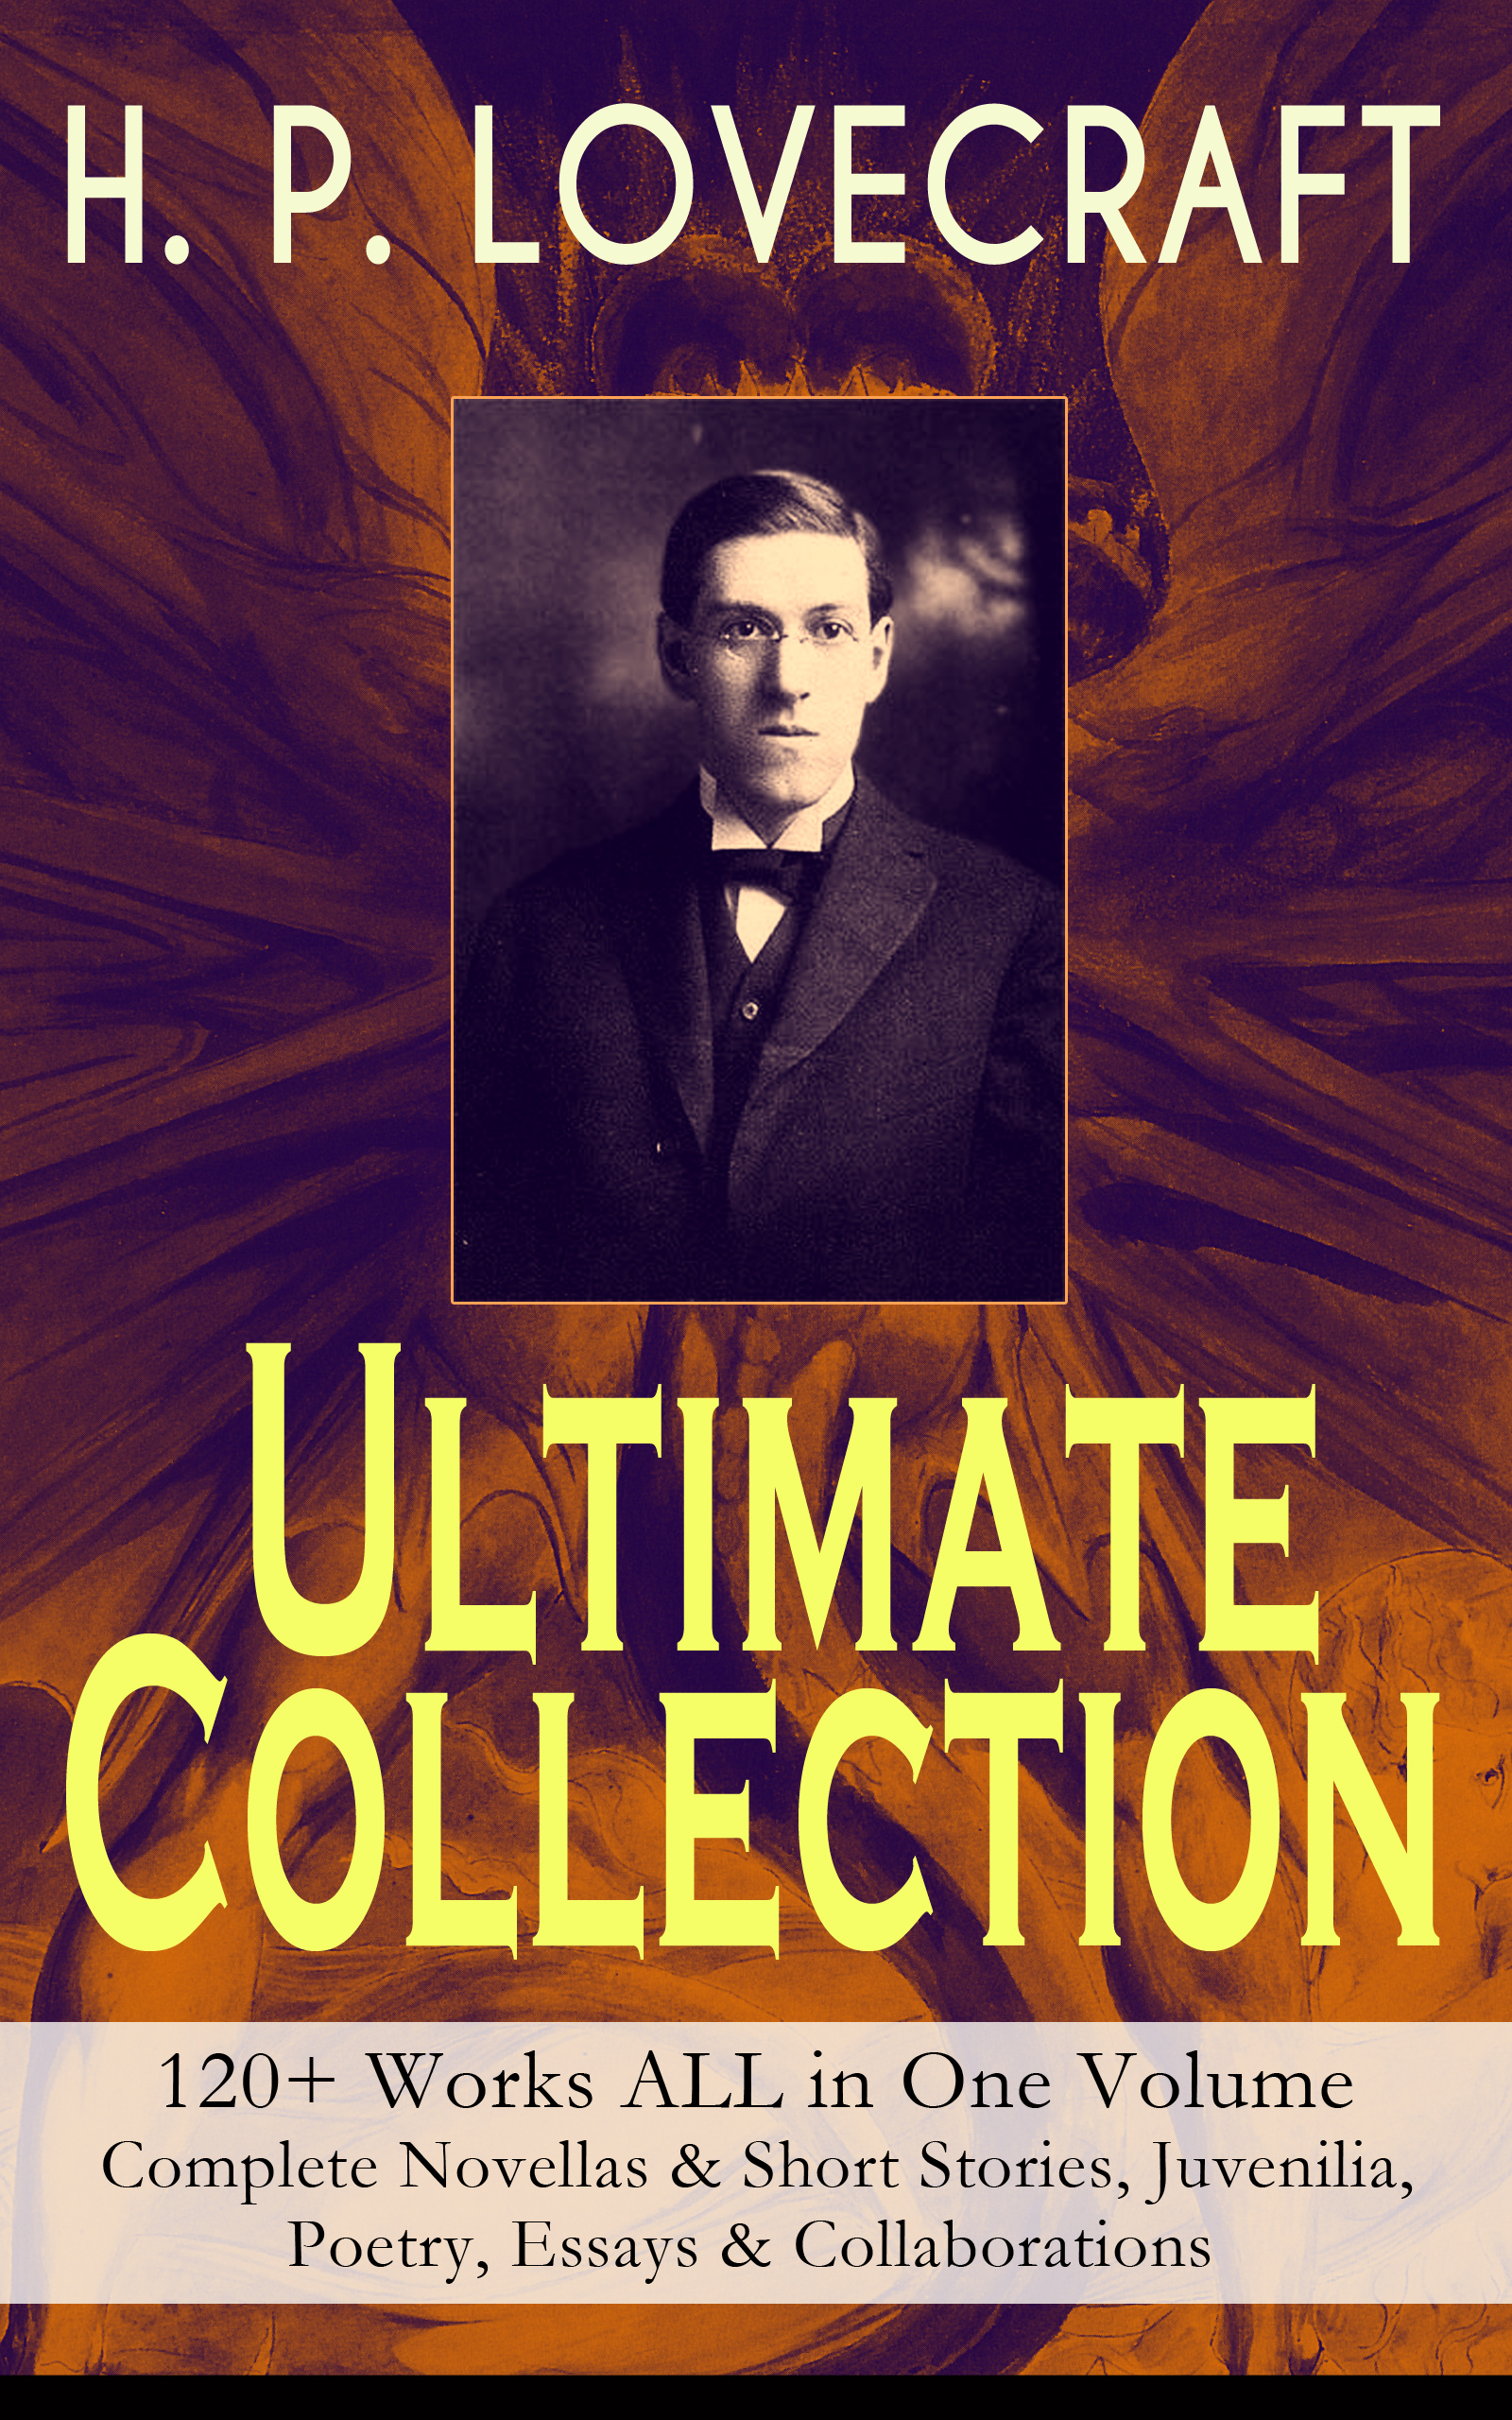 Говард Филлипс Лавкрафт H. P. LOVECRAFT – Ultimate Collection: 120+ Works ALL in One Volume: Complete Novellas & Short Stories, Juvenilia, Poetry, Essays & Collaborations rare earths element collection complete 16 in all europium lutetium